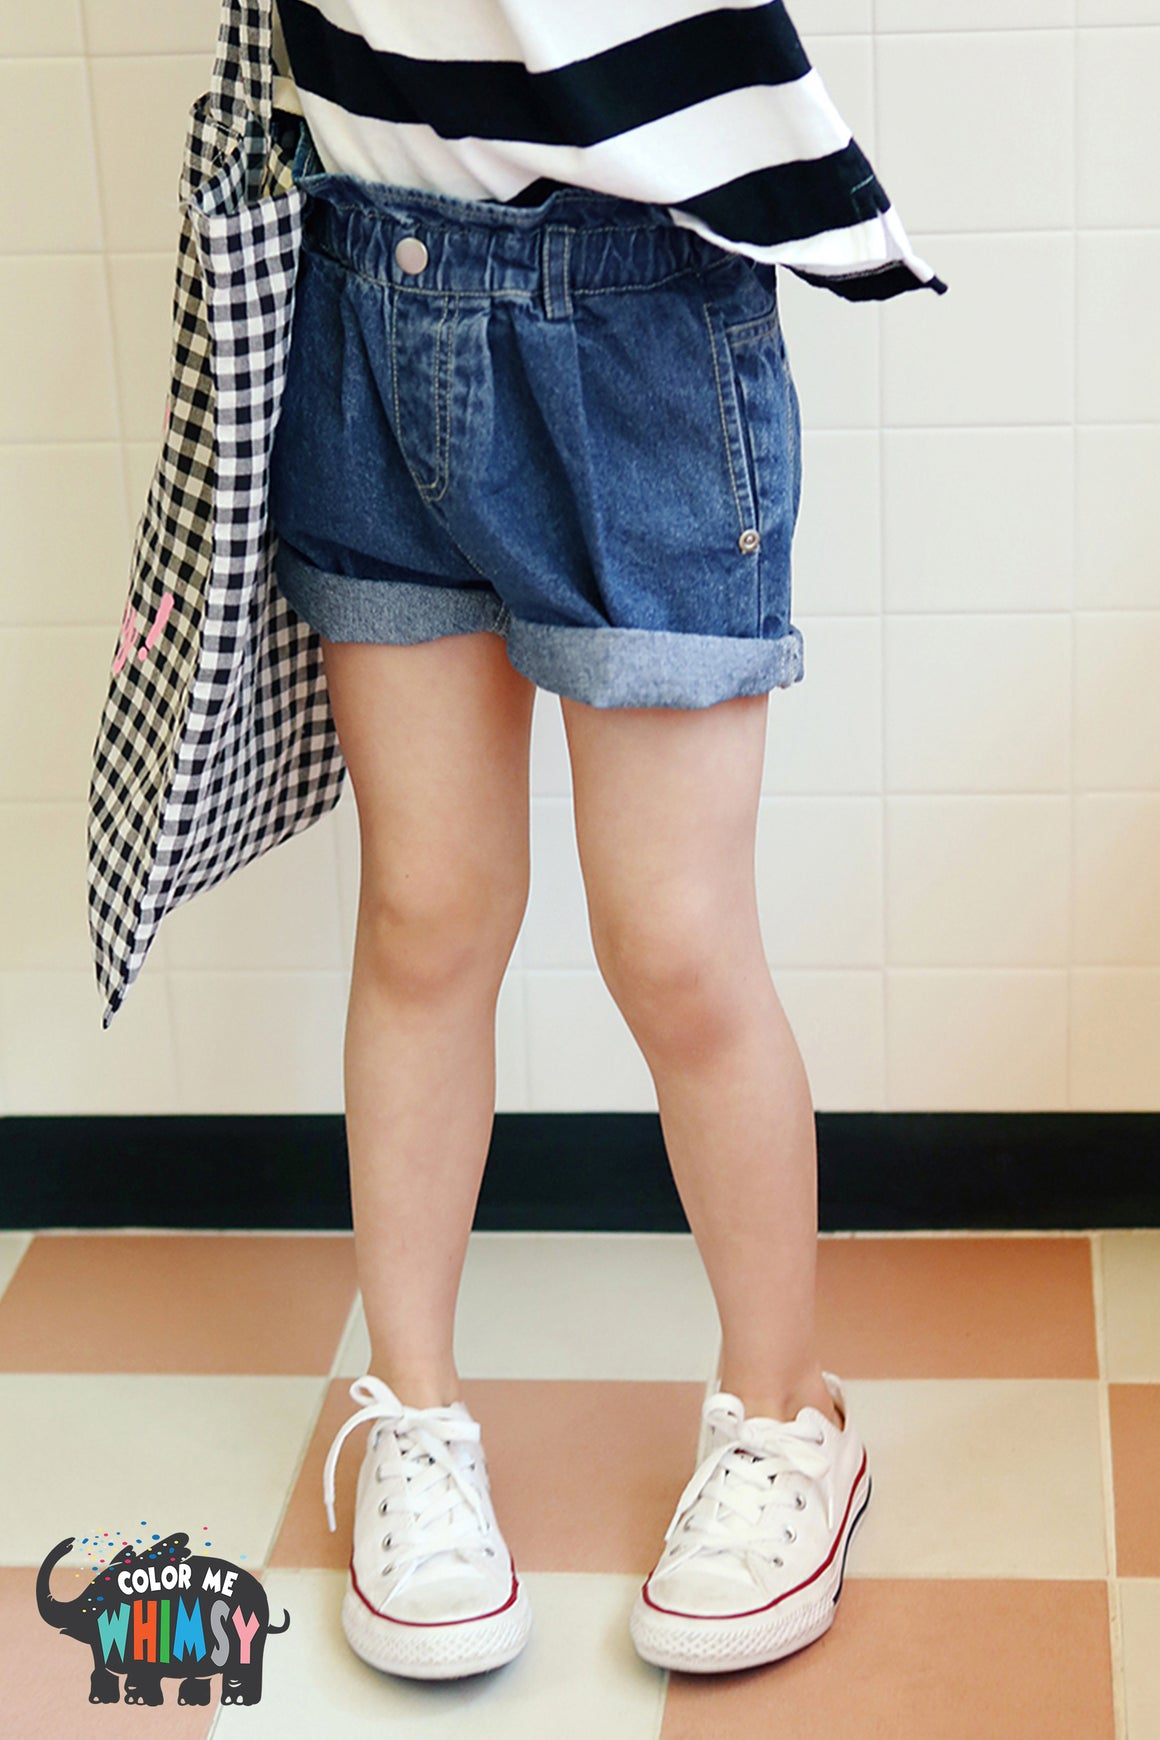 Peach and Cream DeepNY Denim Shorts at Color Me WHIMSY Hip Kid's Fashion Ethically Made in South Korea